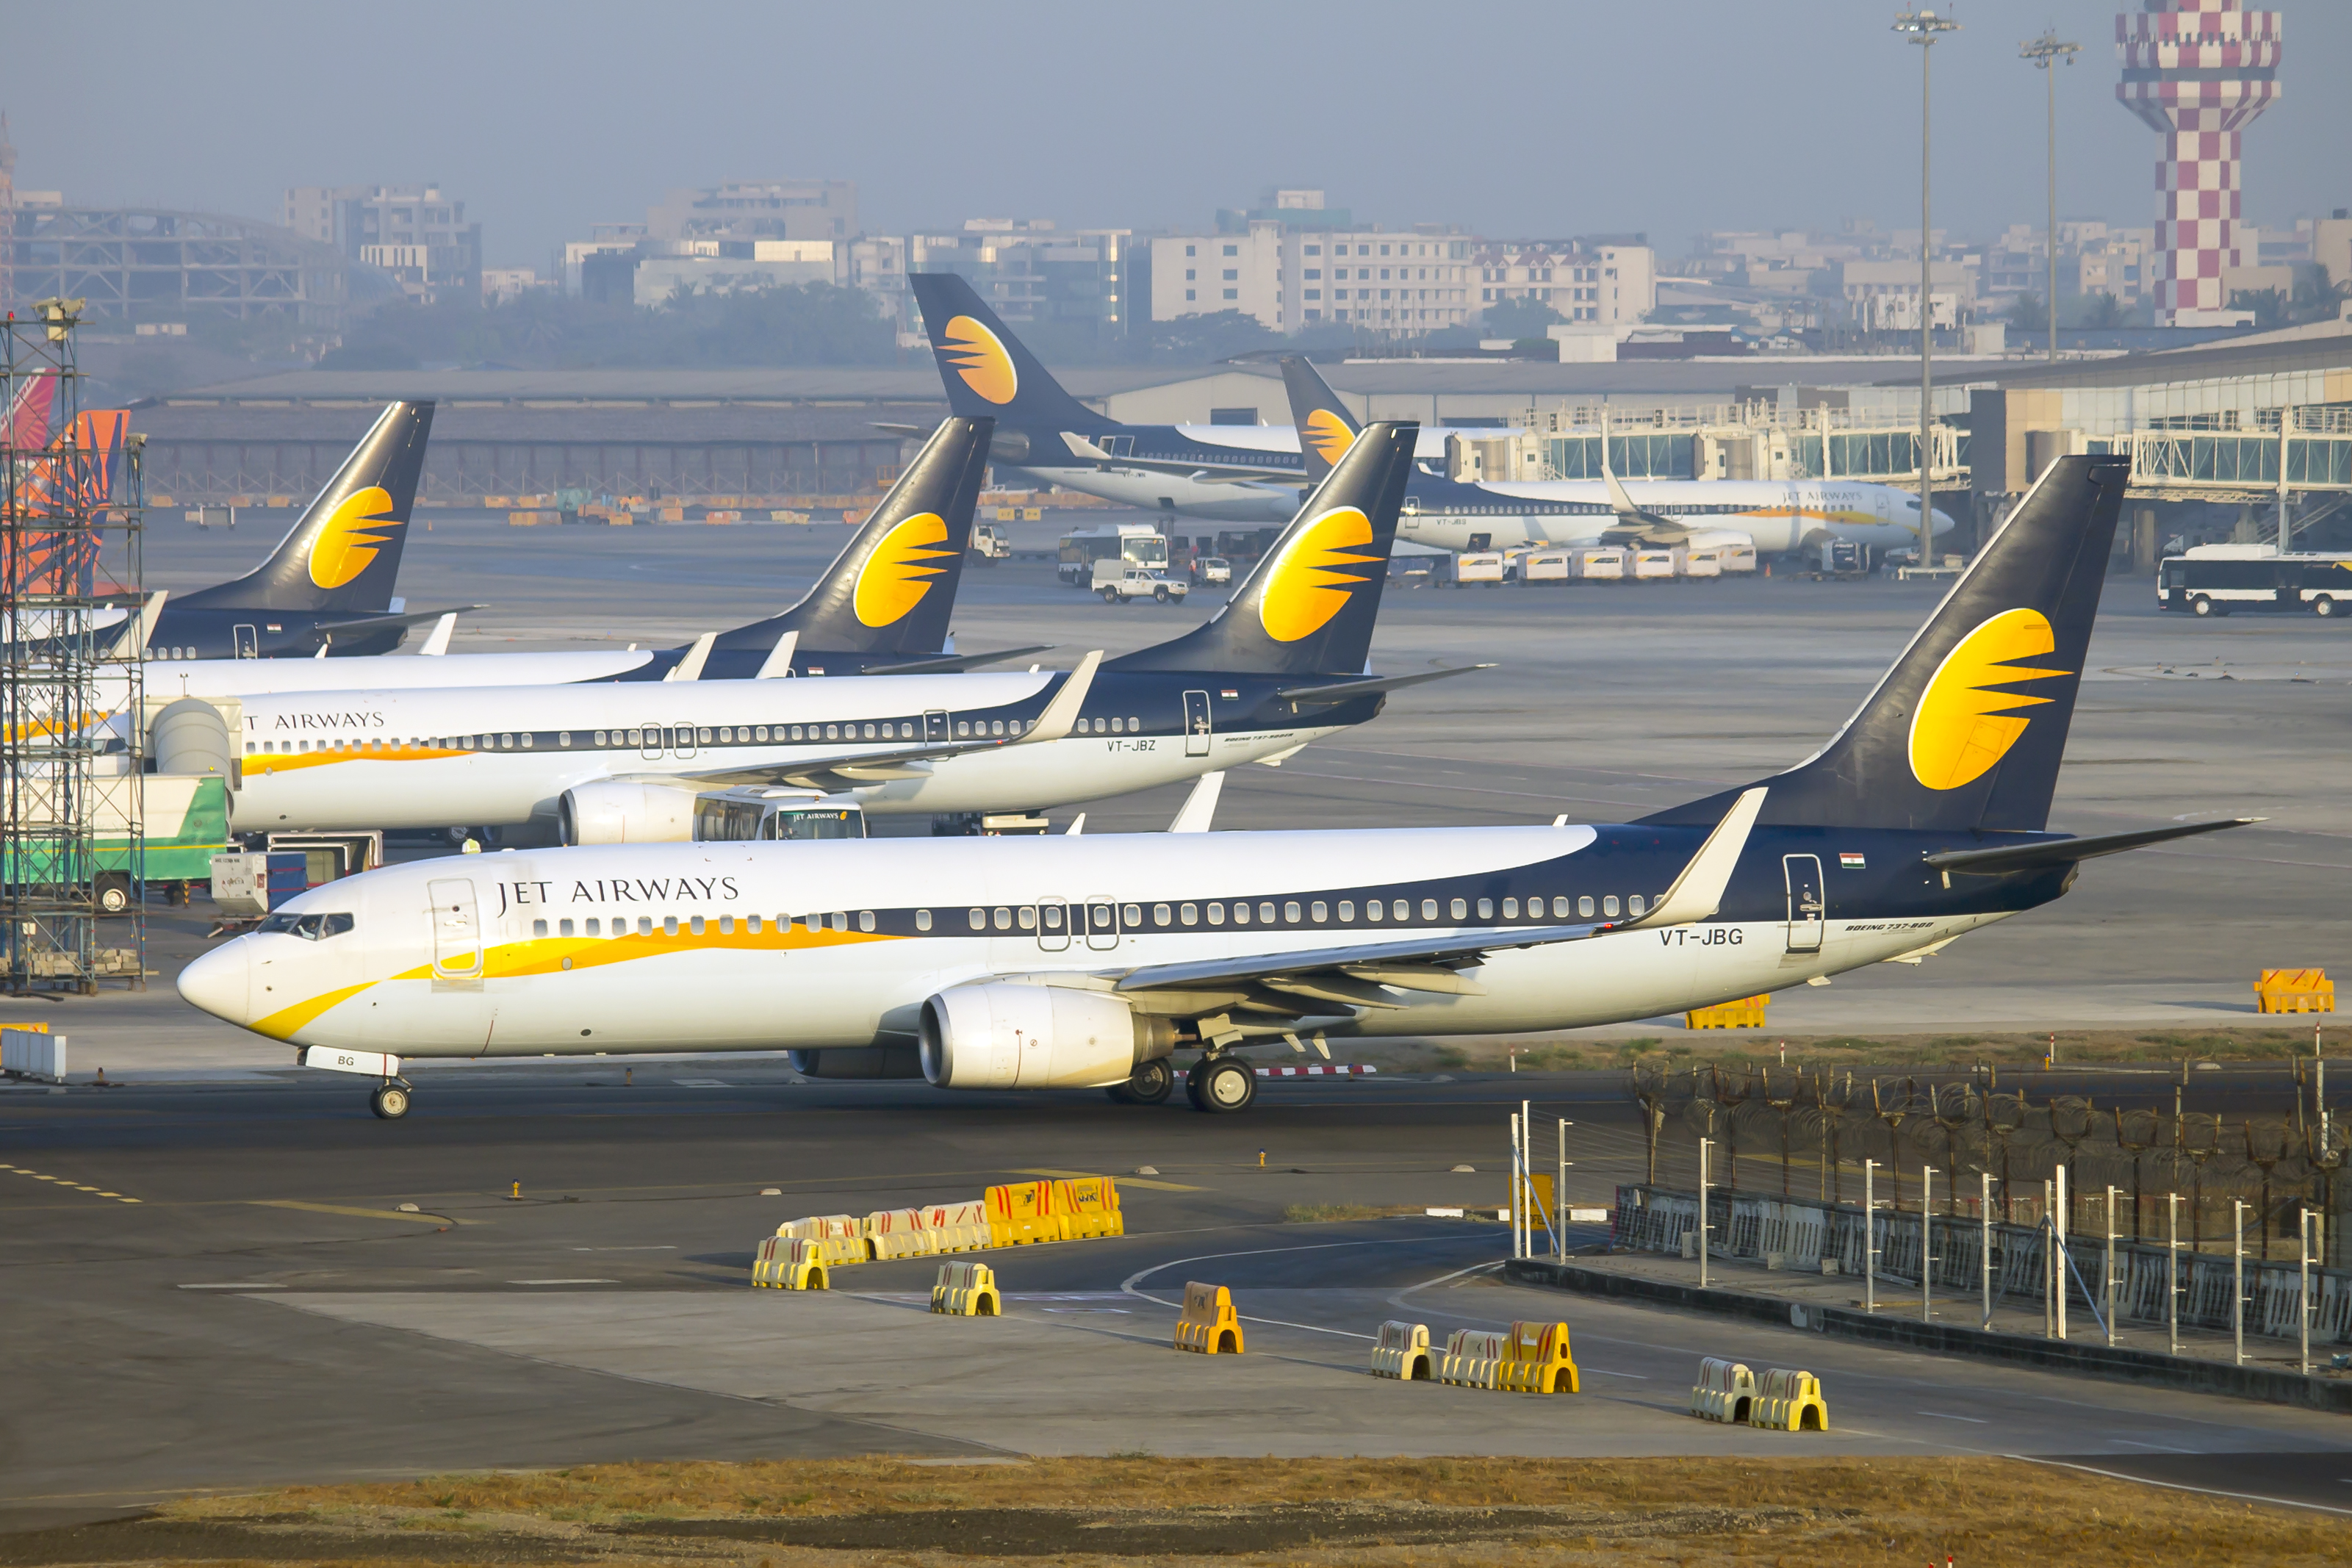 Jet Airways owes more than Rs 8,000 crore to the lenders' consortium apart from vendor dues and unpaid salaries, taking its total liabilities to over Rs 20,000 crore.